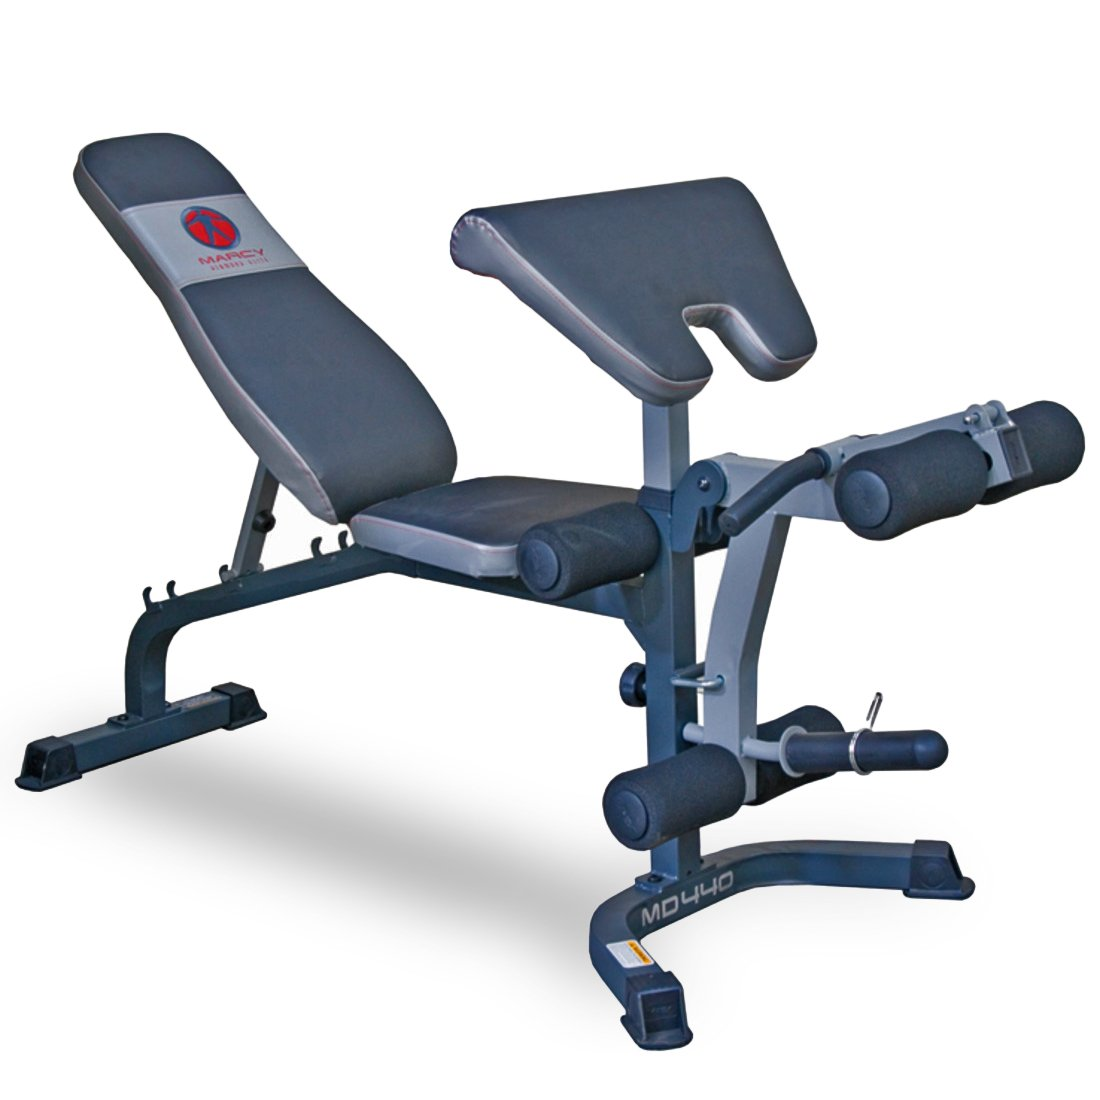 Marcy Diamond Elite Md 440 Weight Bench With Preacher Pad U0026 Leg